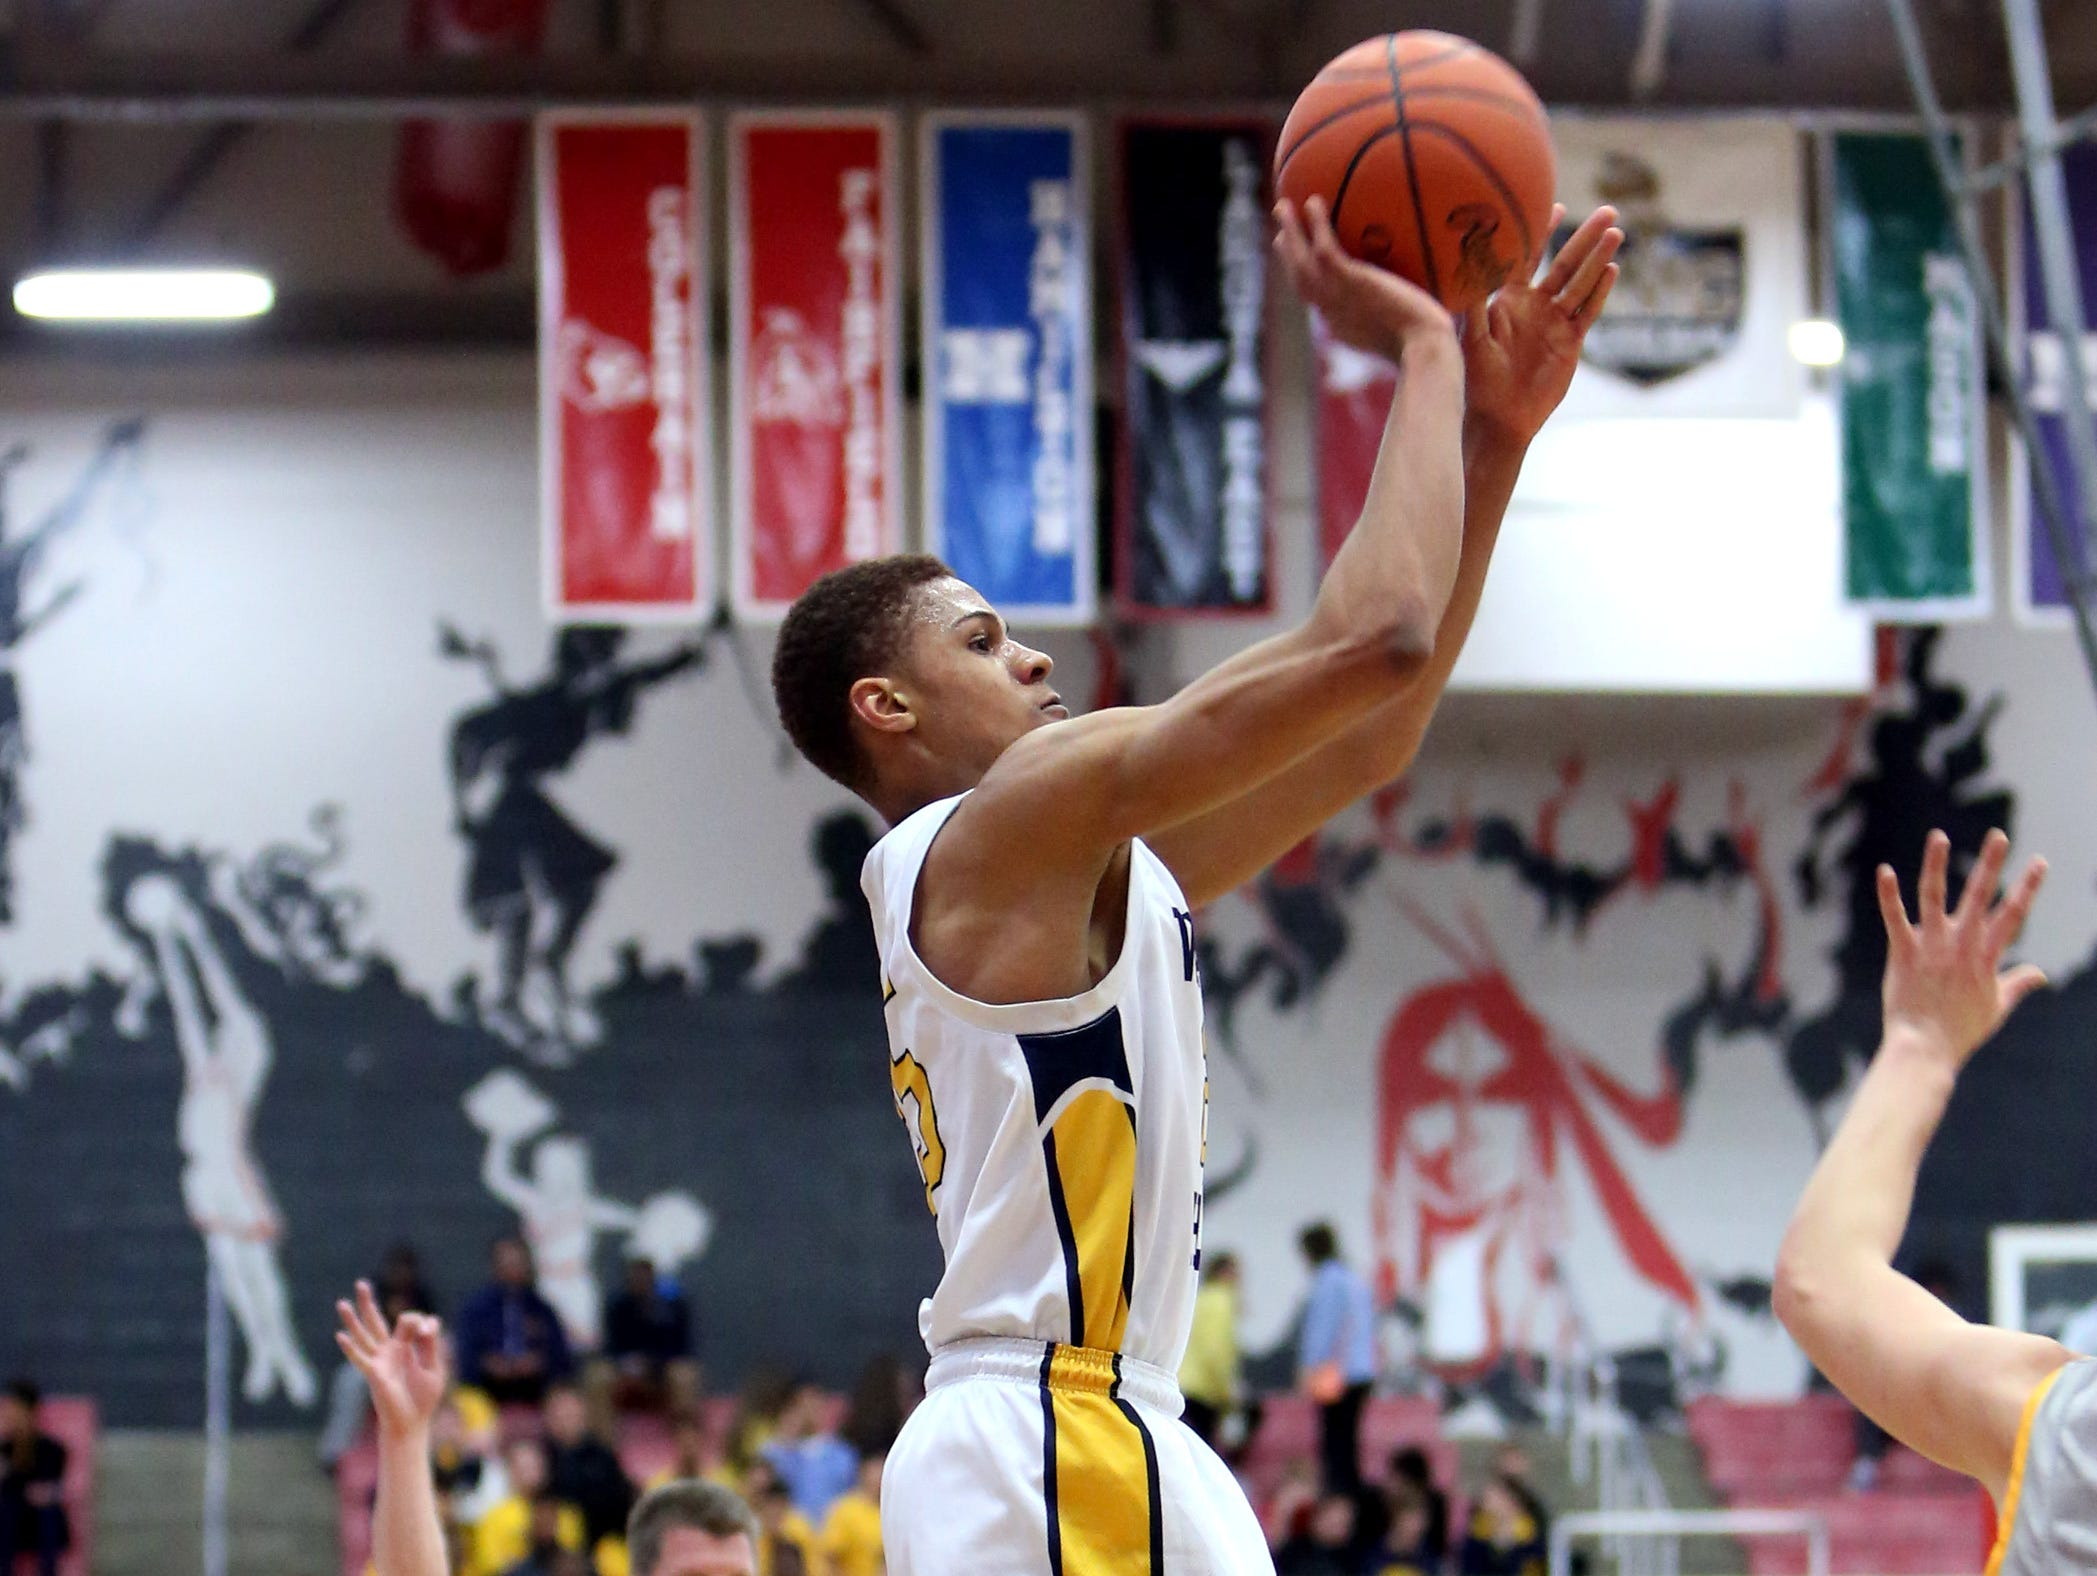 Walnut Hills guard MaCio Teague had 20 points for the Eagles in his final game March 6 in the Division I sectional final at Fairfield. Moeller got the win 48-40.